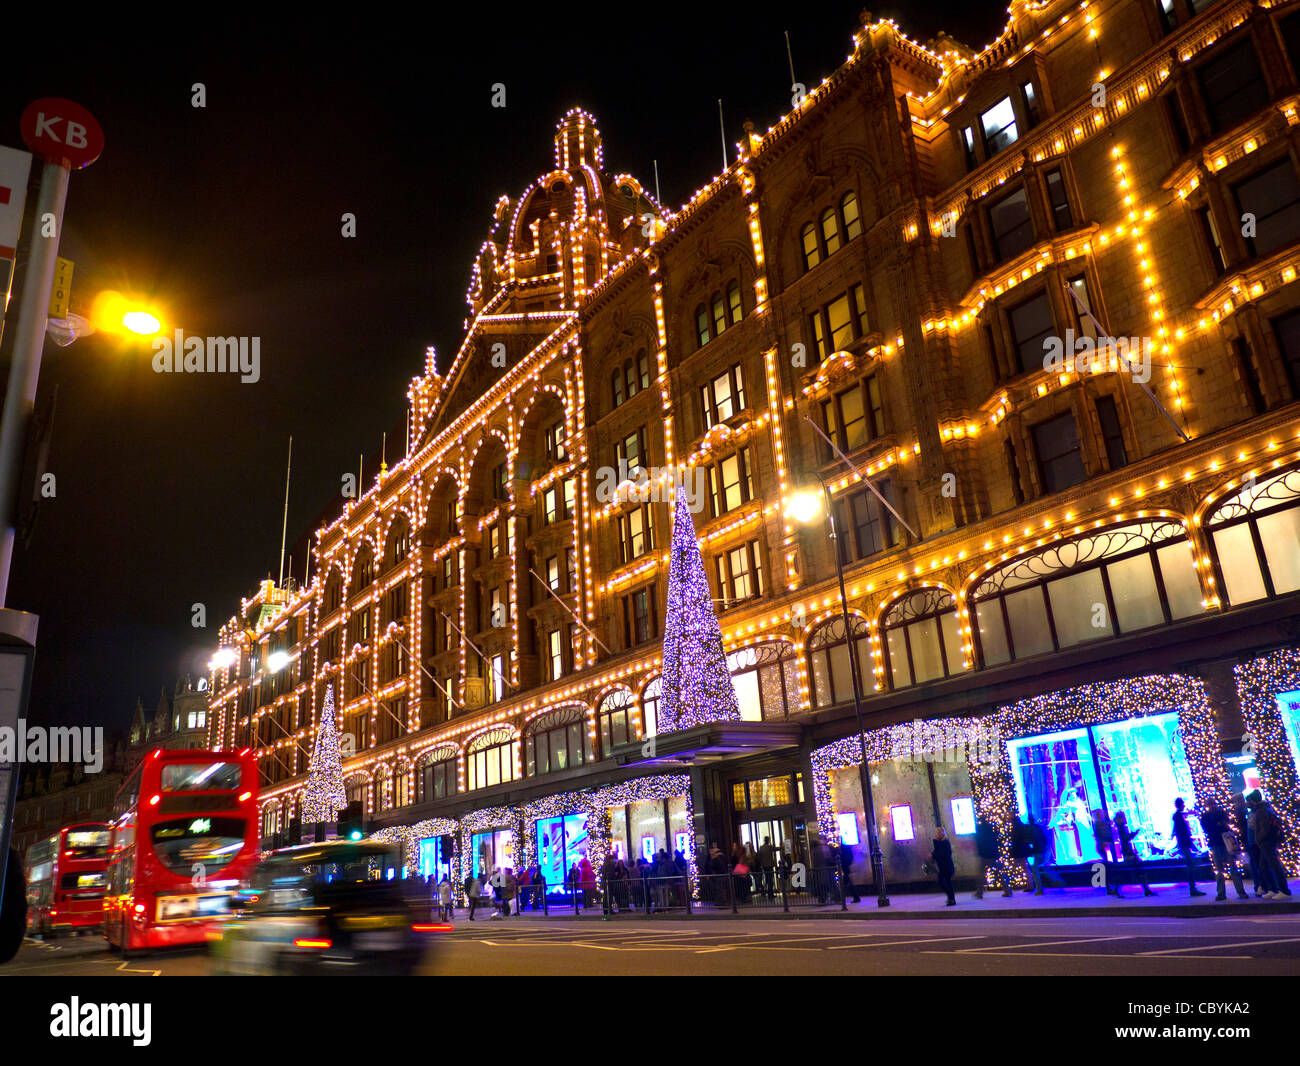 harrods at night stockfotos harrods at night bilder alamy. Black Bedroom Furniture Sets. Home Design Ideas